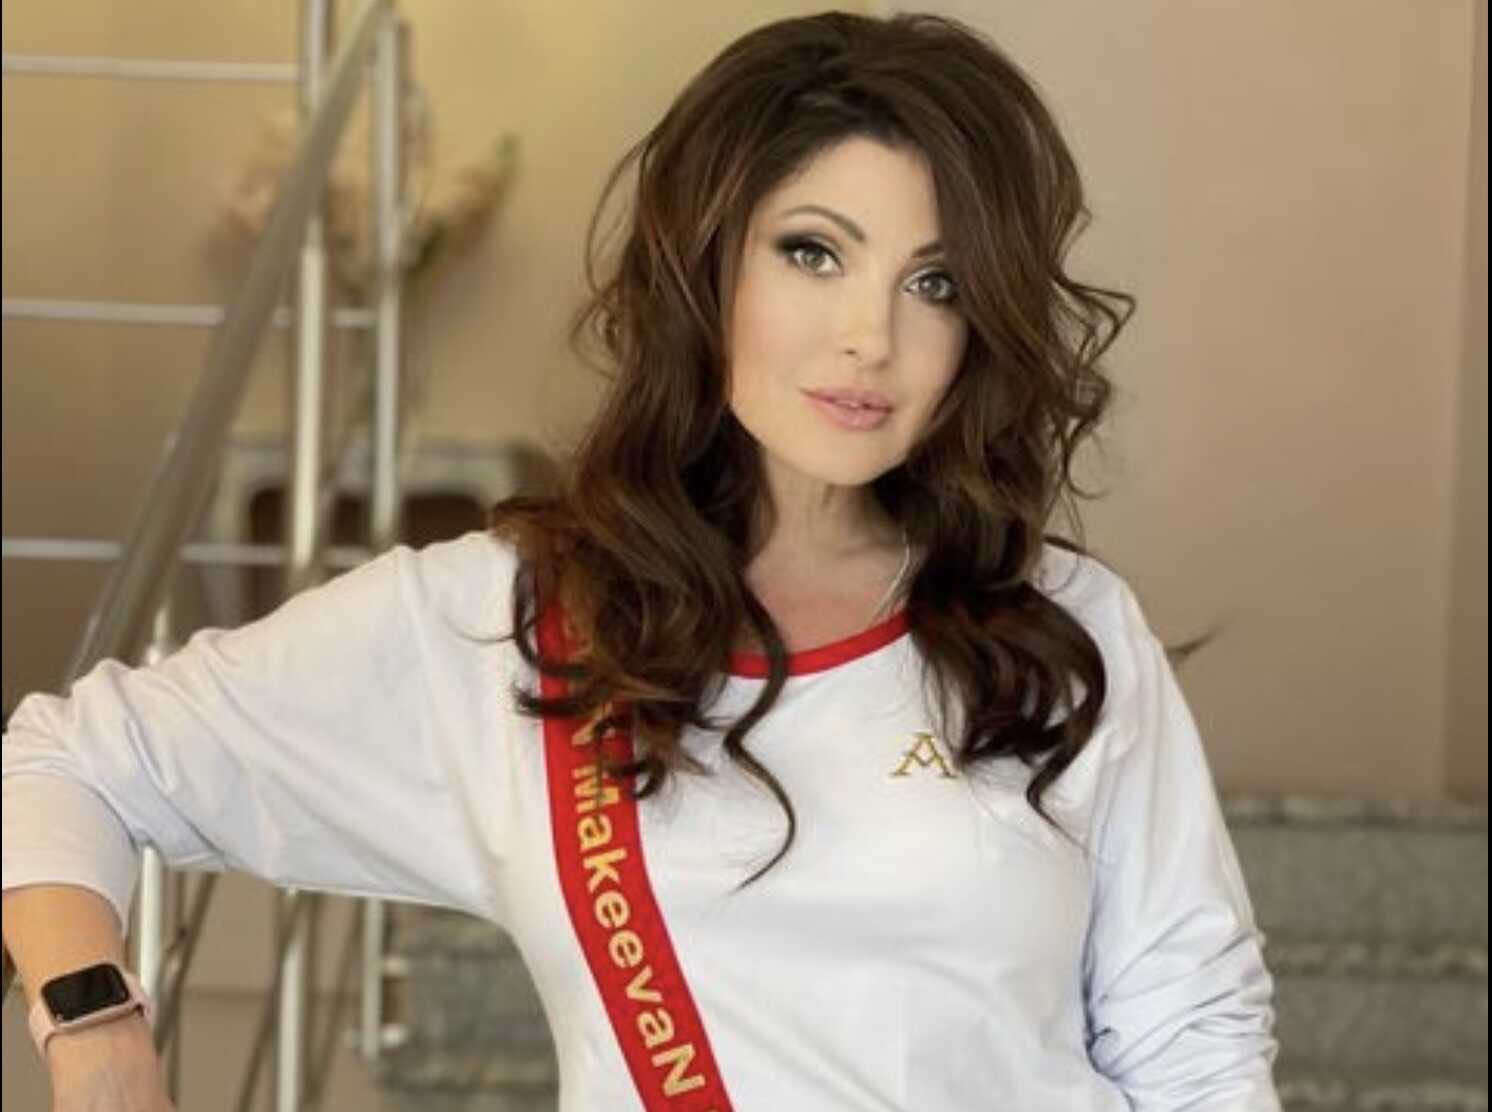 Anastasia Makeeva expects to have a barter wedding with her builder